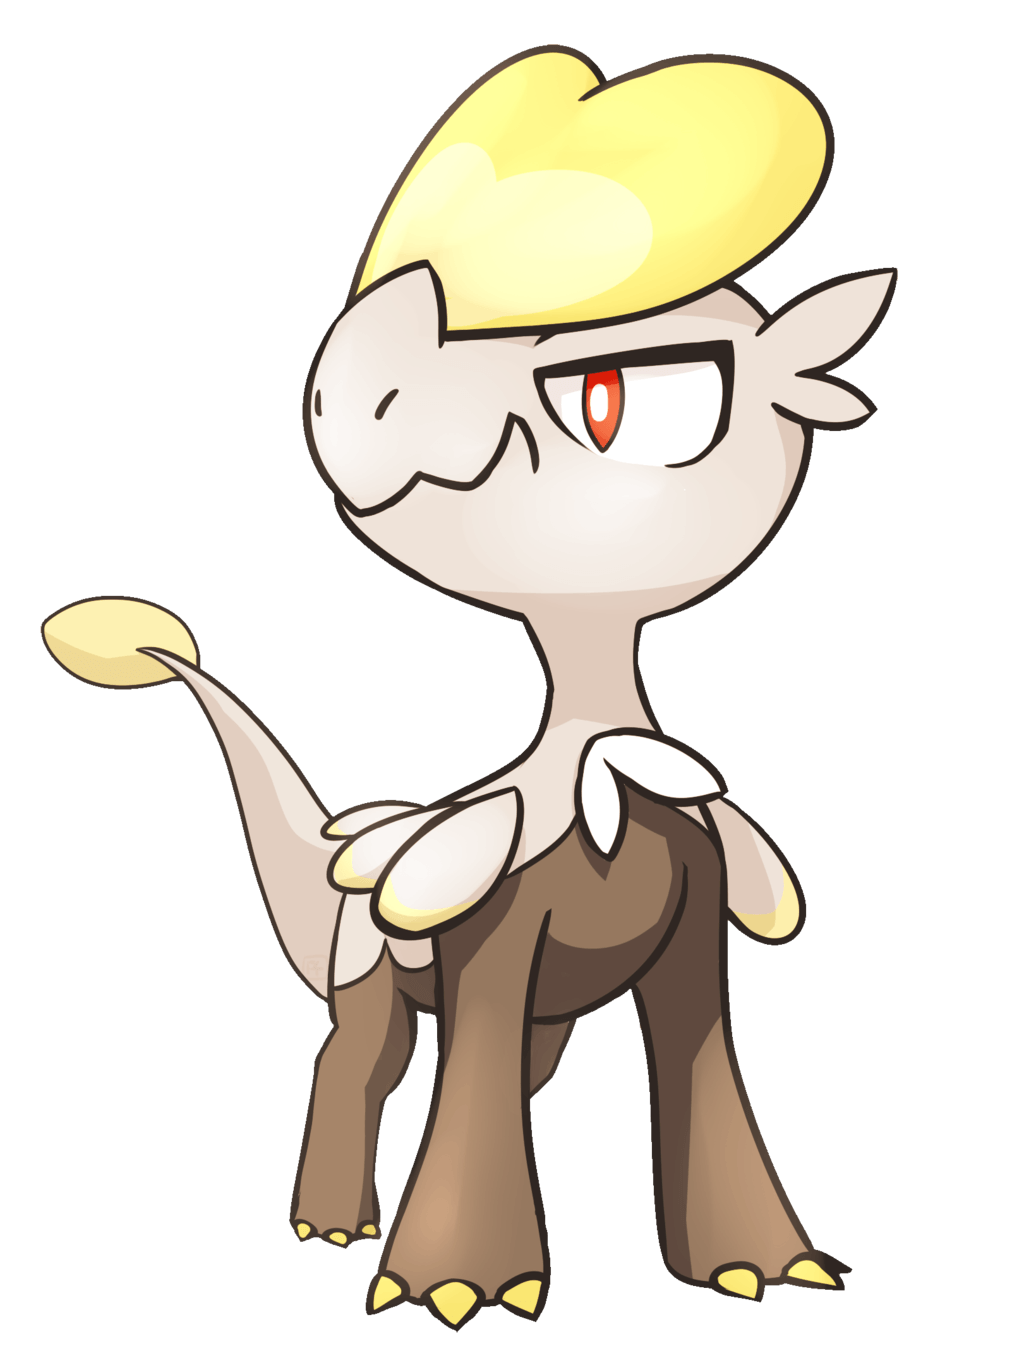 vp/ - Pokémon » Thread #31707282